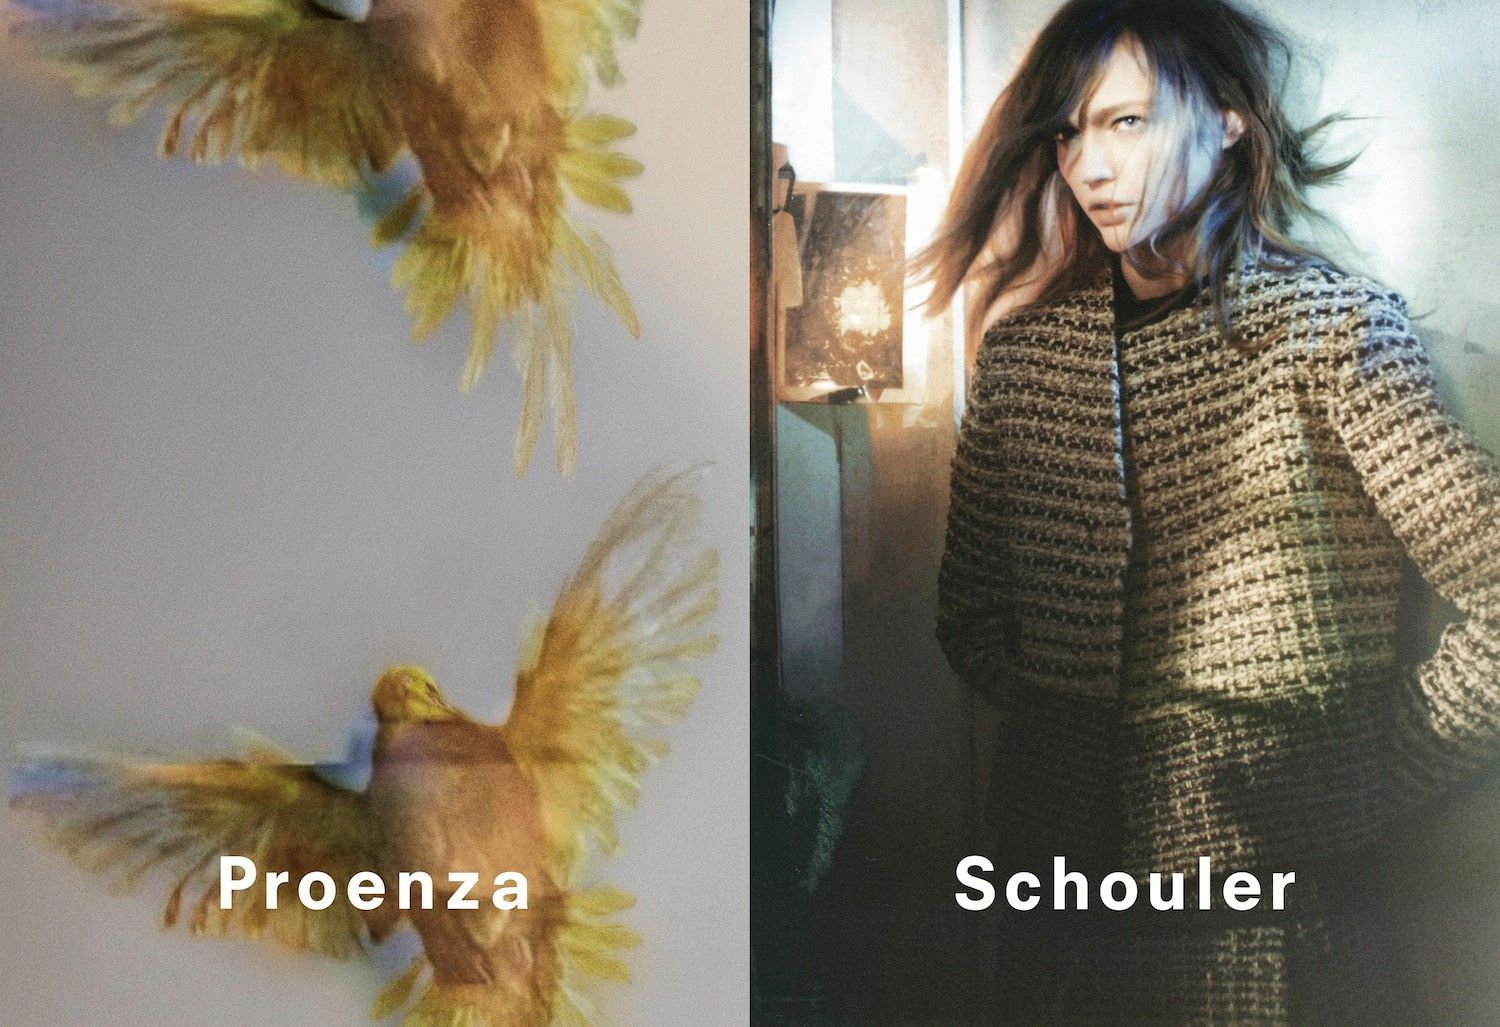 Proenza Campaign (by David Sims)